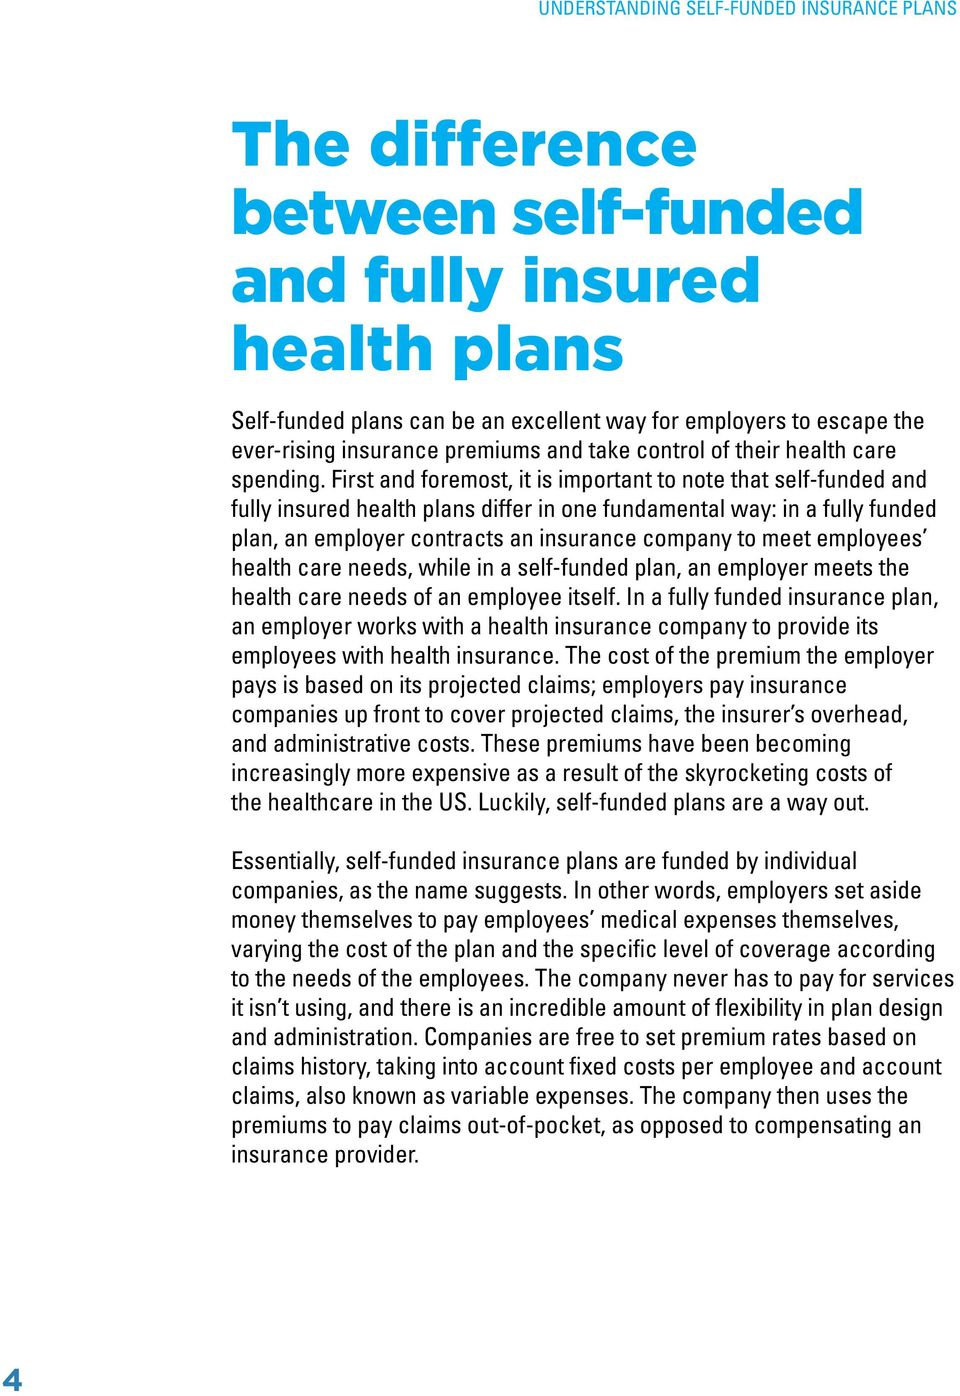 First and foremost, it is important to note that self-funded and fully insured health plans differ in one fundamental way: in a fully funded plan, an employer contracts an insurance company to meet